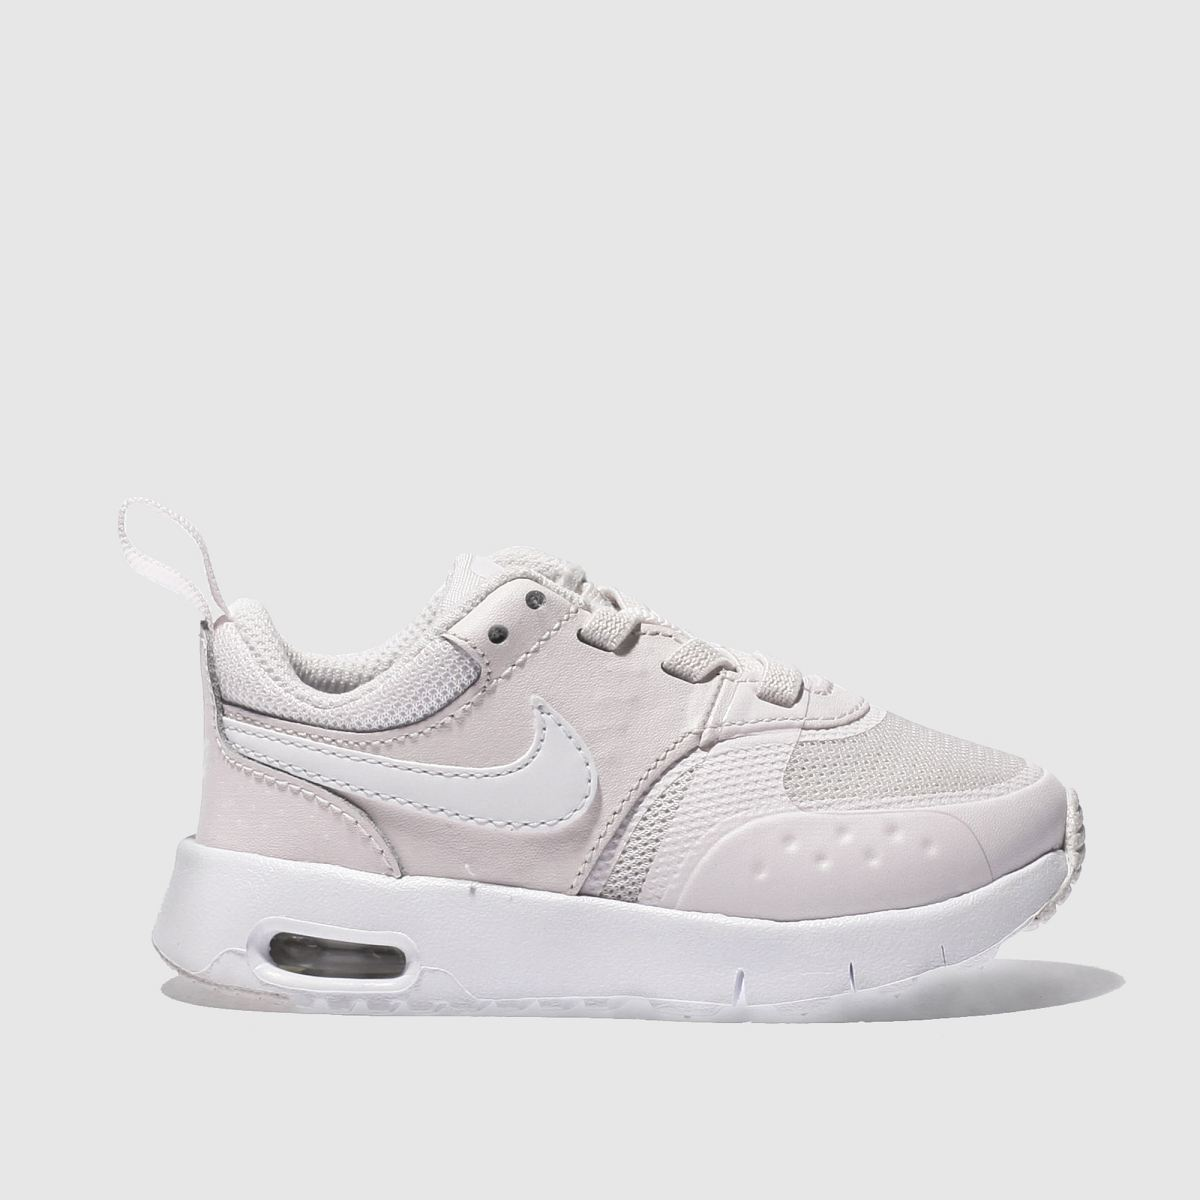 nike pale pink air max vision Girls Toddler Trainers